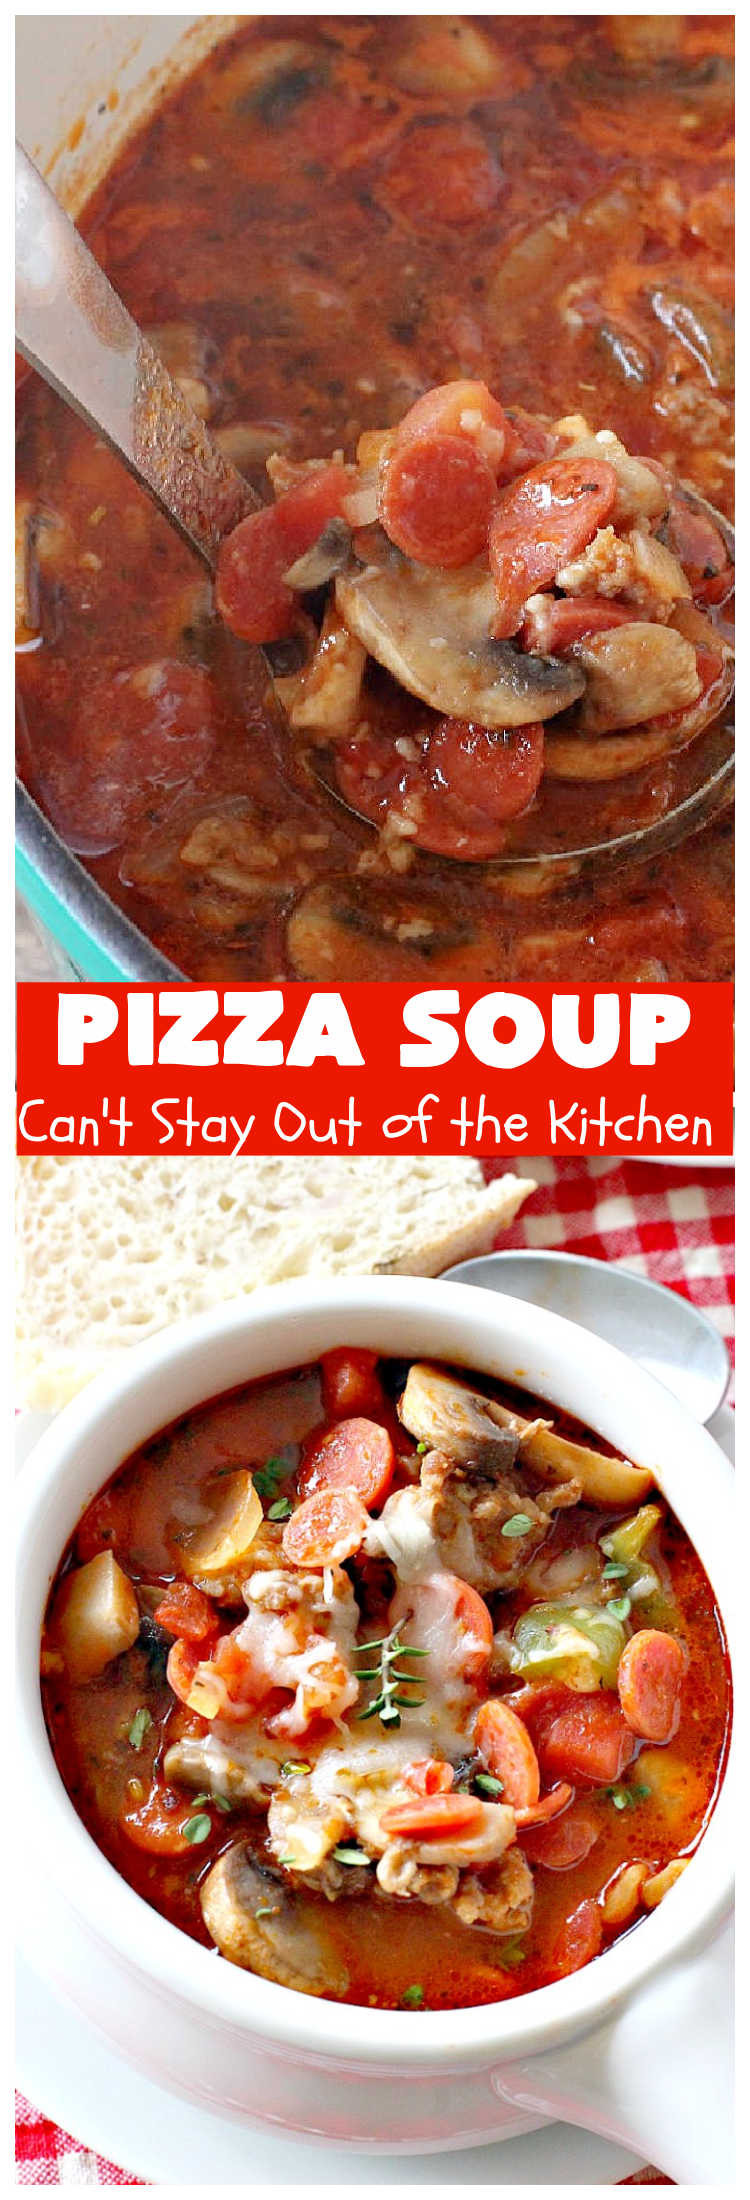 Pizza Soup | Can't Stay Out of the Kitchen | this easy 30-minute #soup is like eating your favorite #pepperoni or #Italian #sausage #pizza but in soup form! It's absolutely terrific. #GlutenFree #PizzaSoup